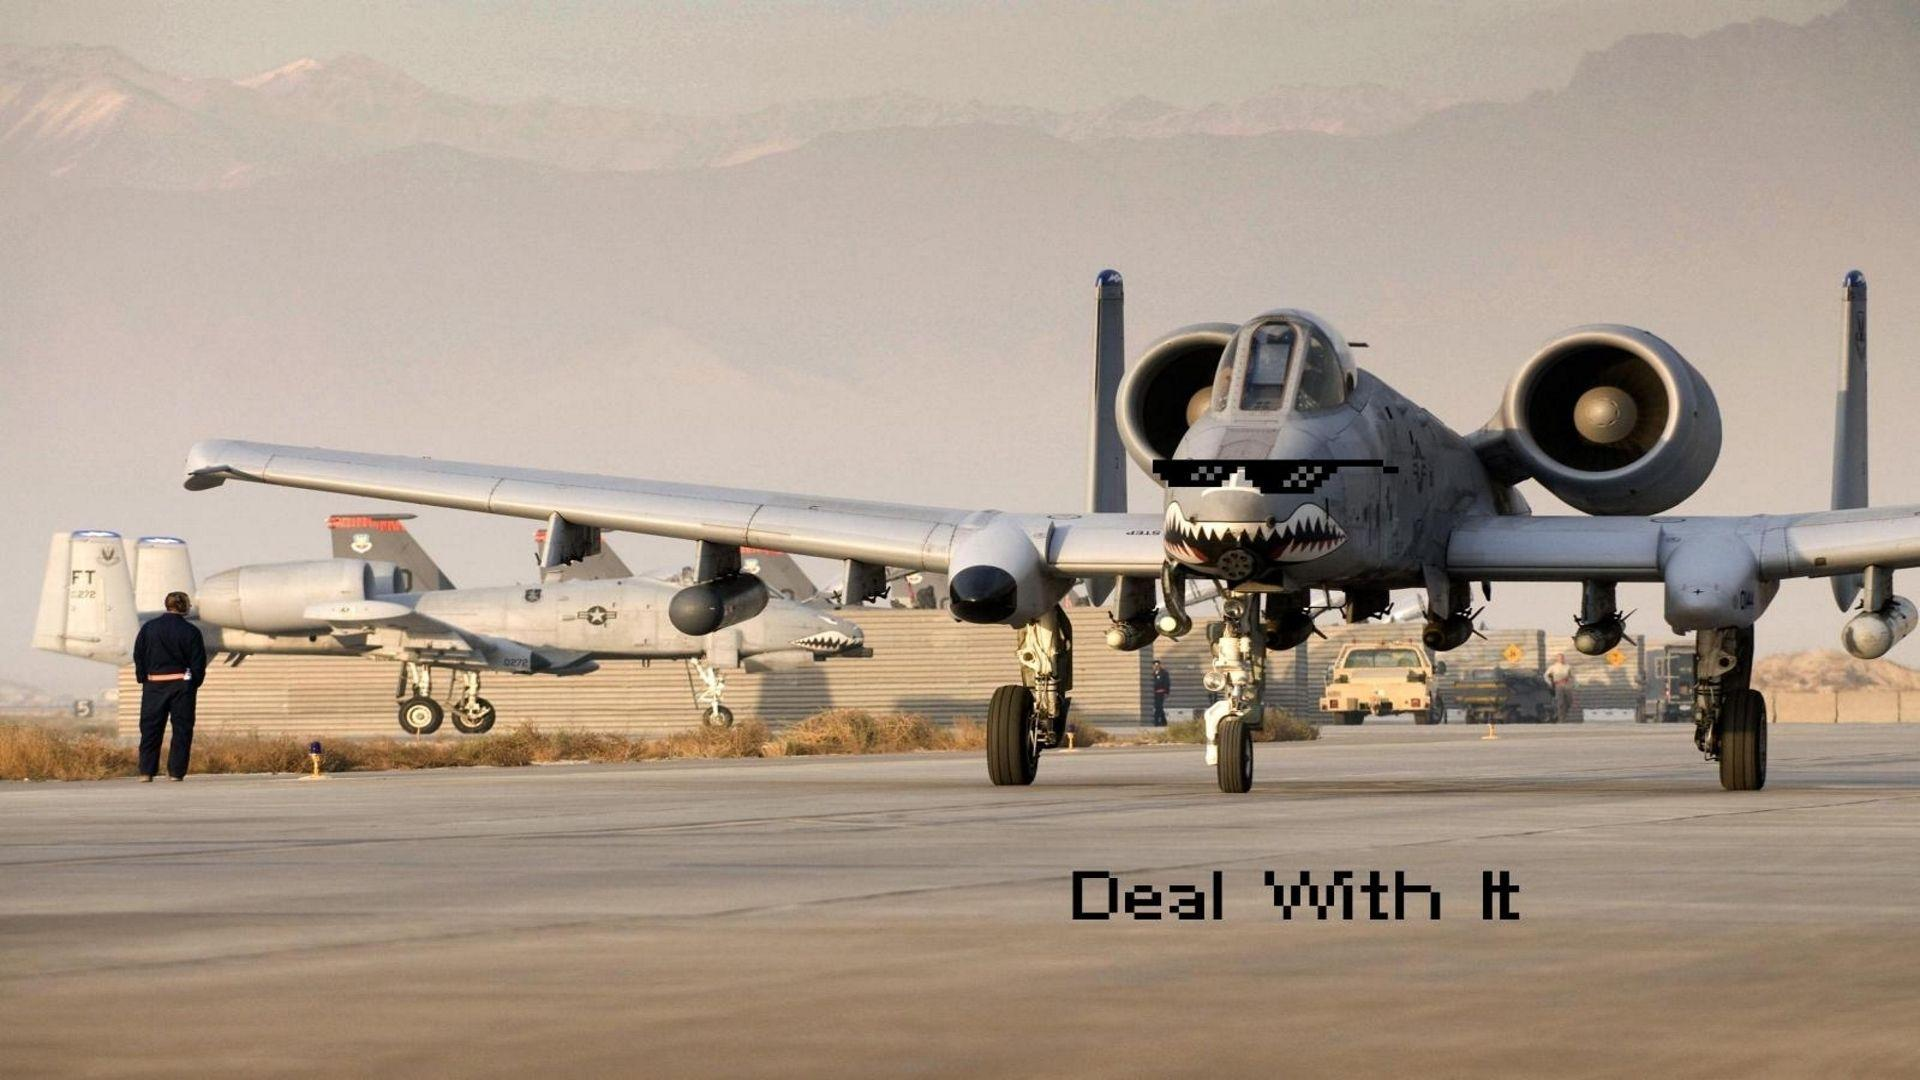 Fairchild Republic A-10 Thunderbolt II Wallpapers - Wallpaper Cave